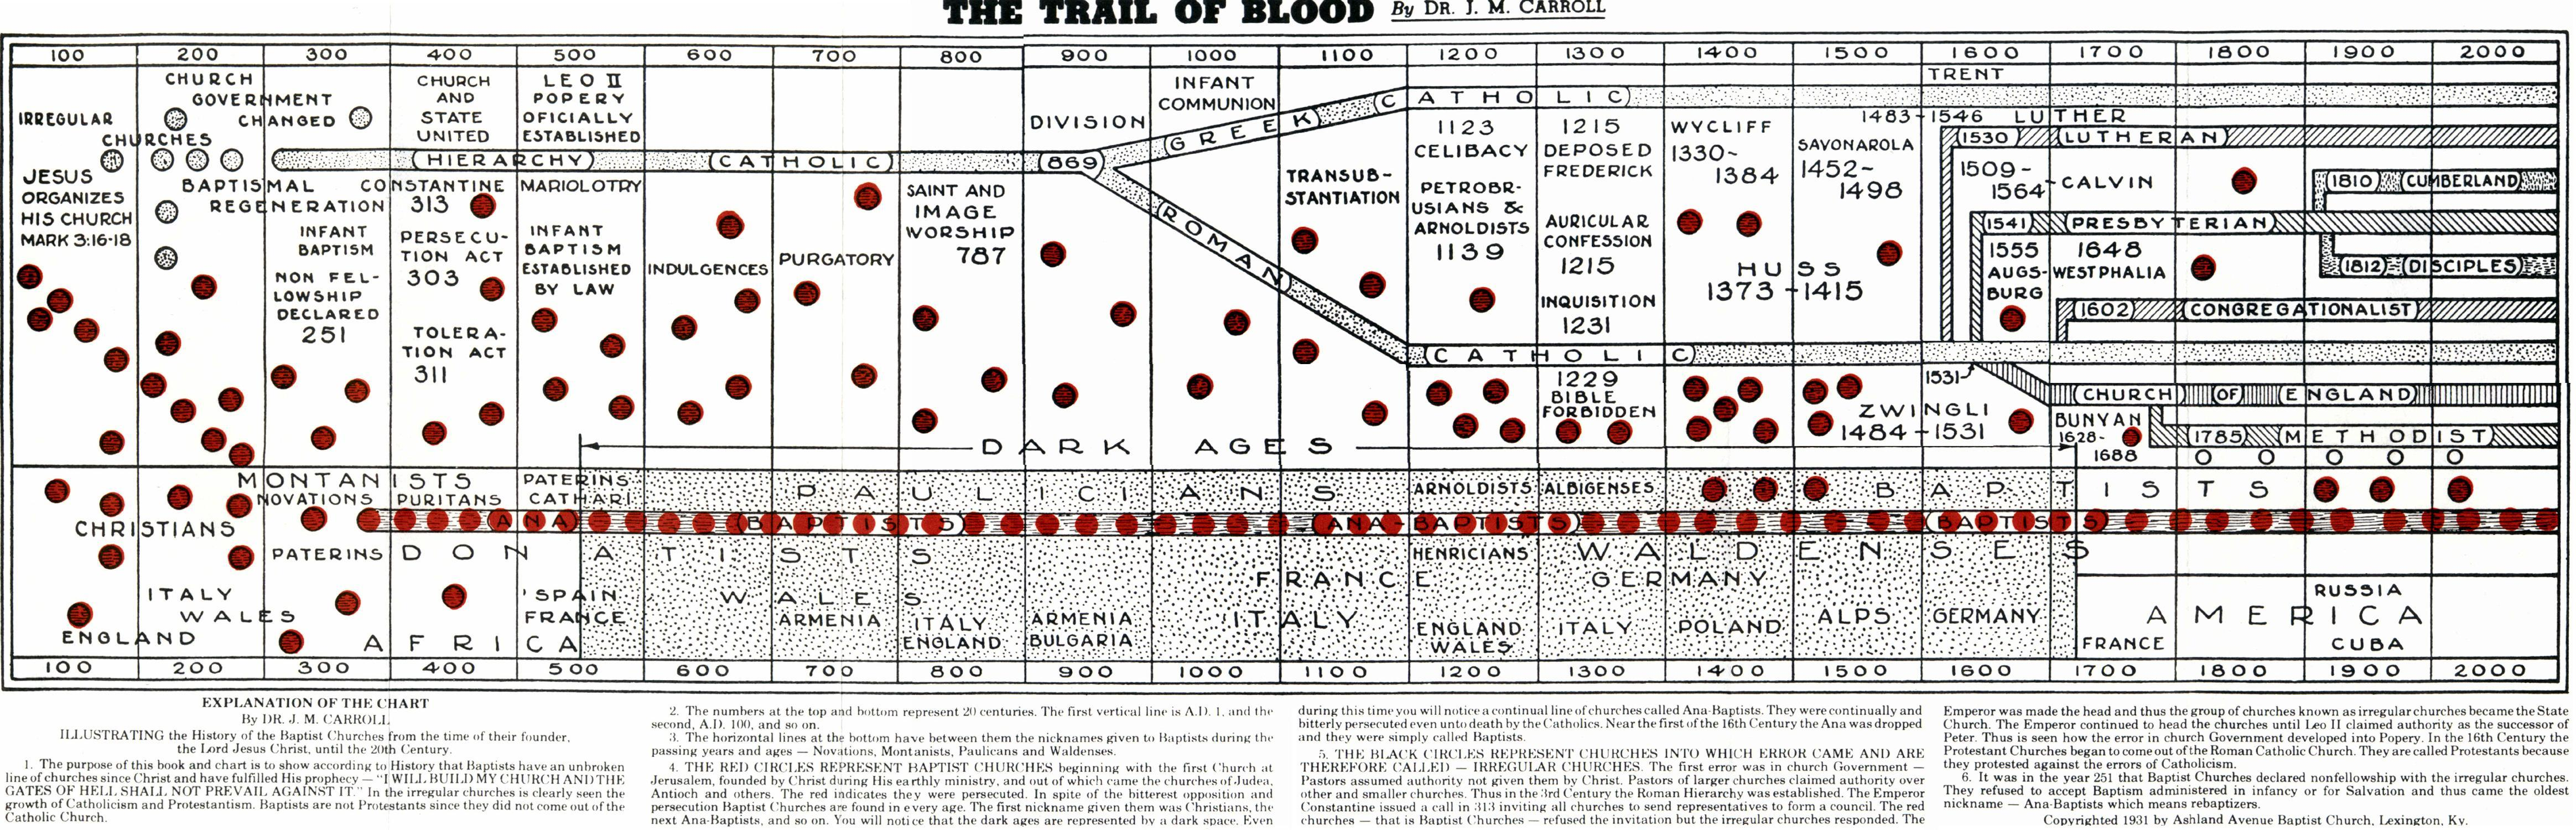 End Times Timeline Chart: The Trail of Blood.jpg - Wikimedia Commons,Chart